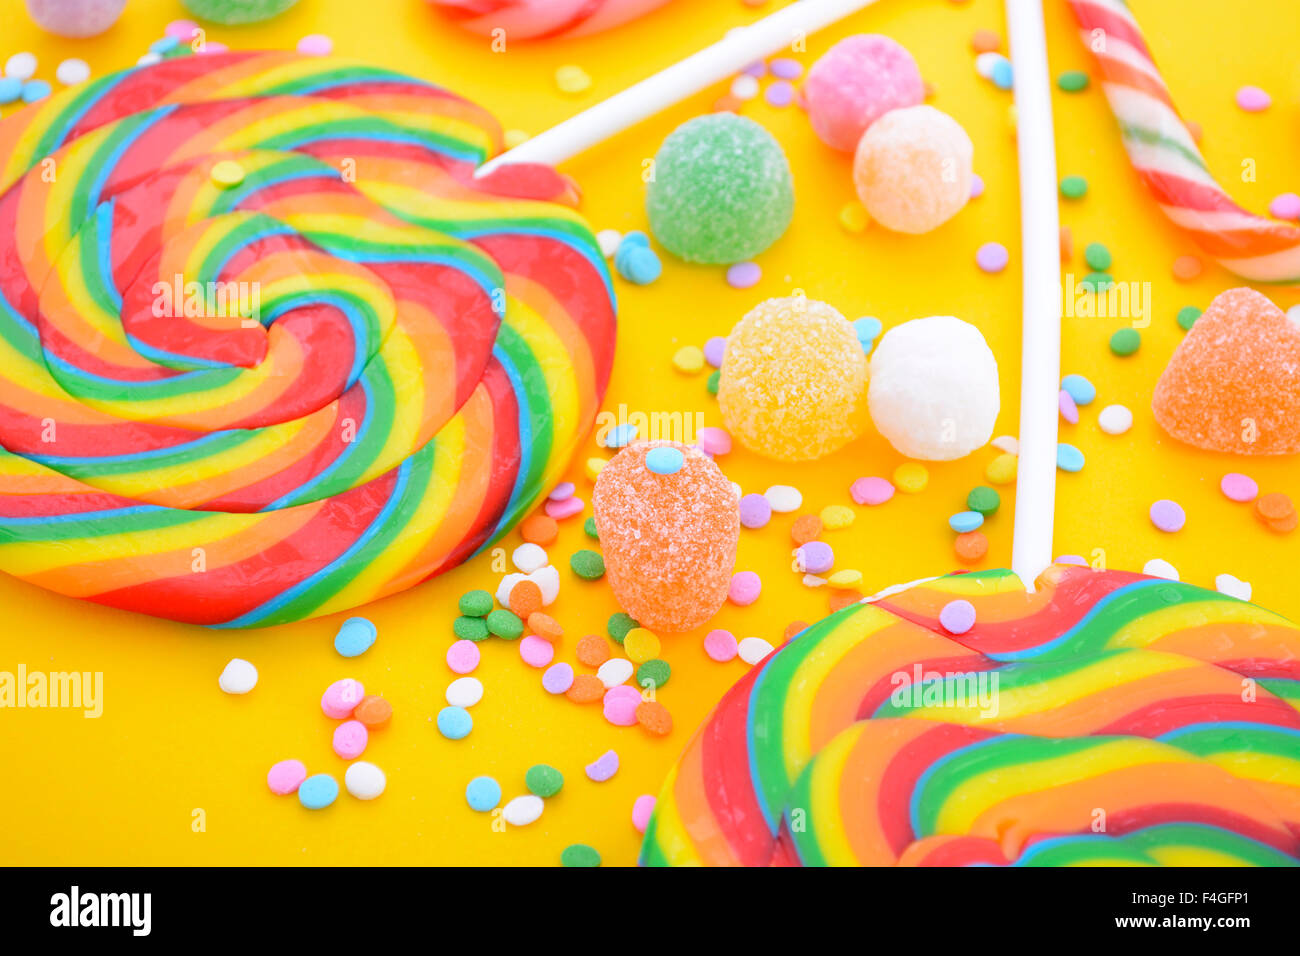 bright rainbow lollipop candy on colorful yellow wood table for halloween trick or treat or childrens party